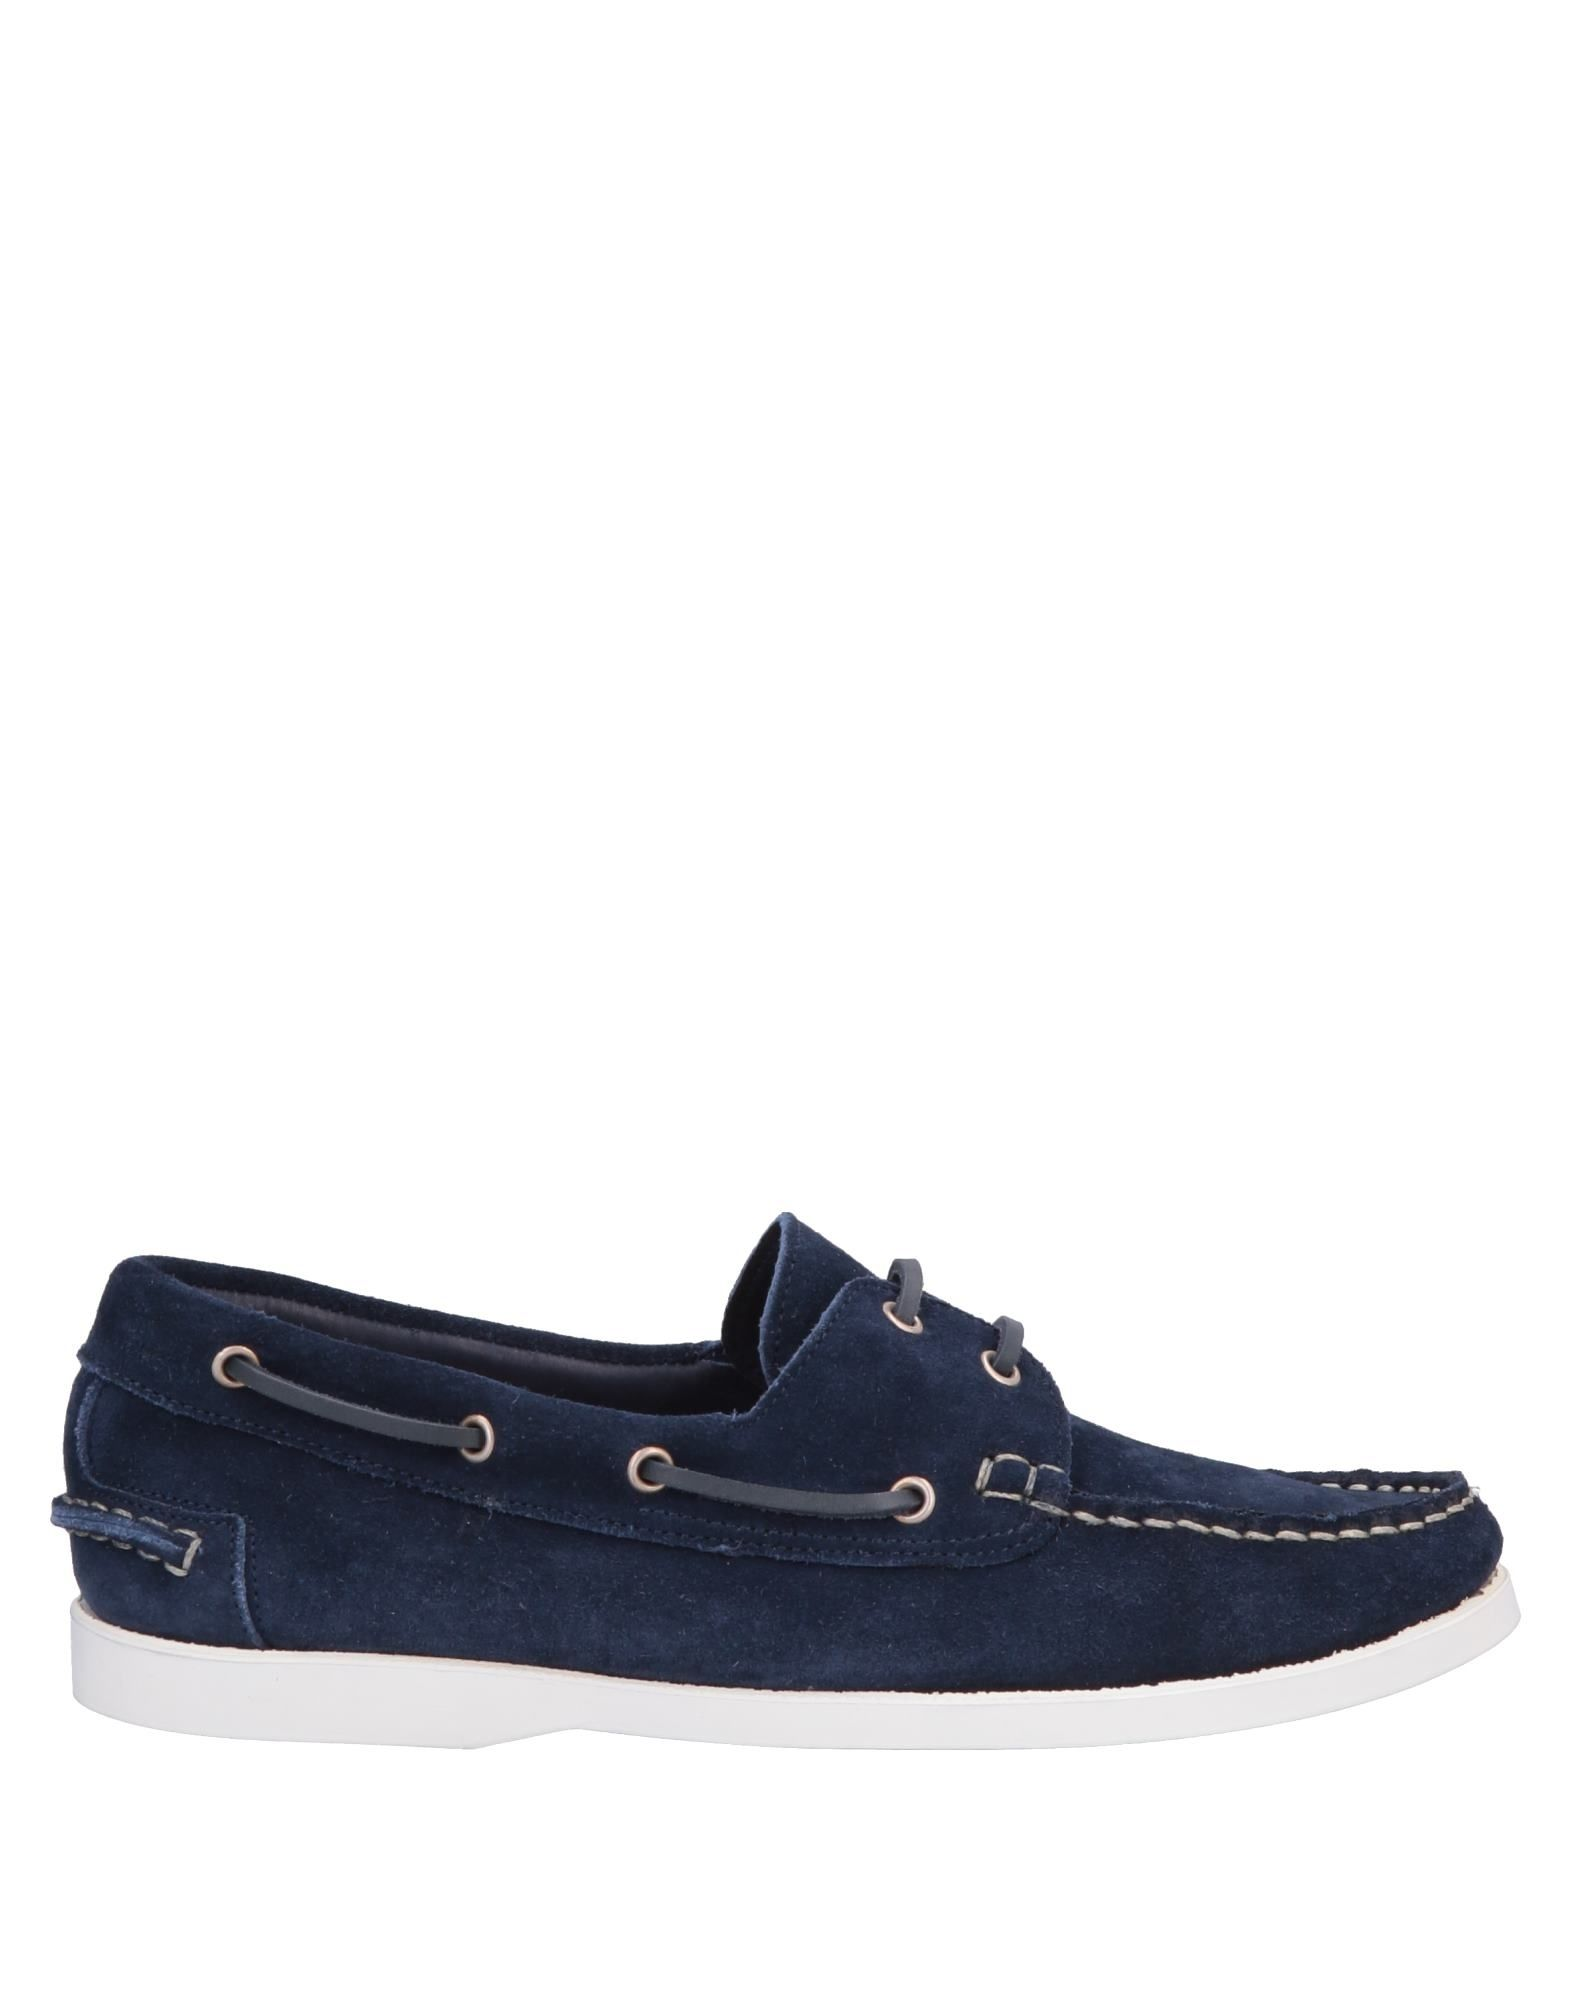 Chaussures À Lacets Frugone Homme - Chaussures À Lacets Frugone   - 11667597WH